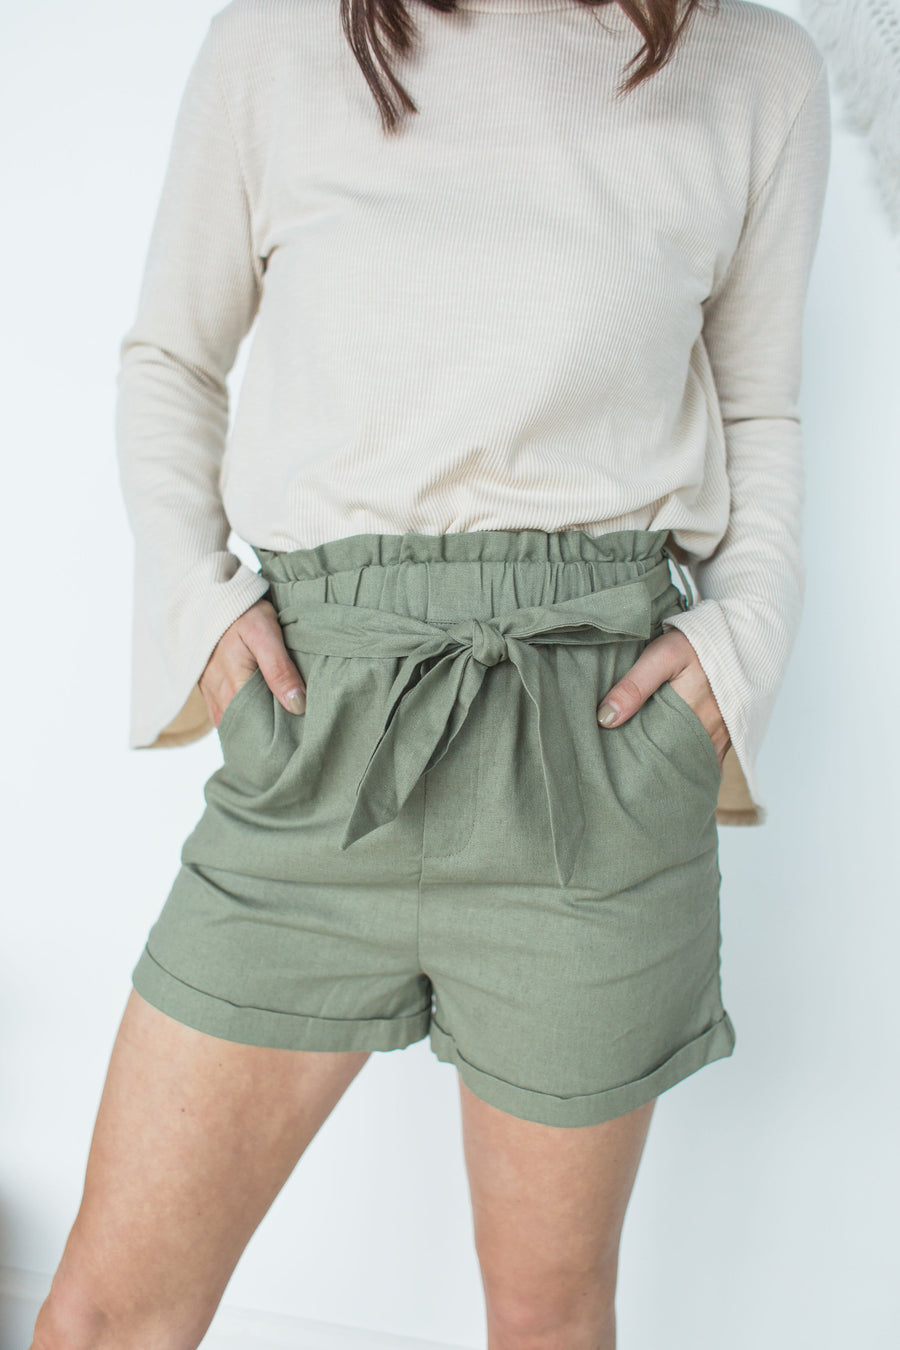 Sure Thing Shorts - Olive